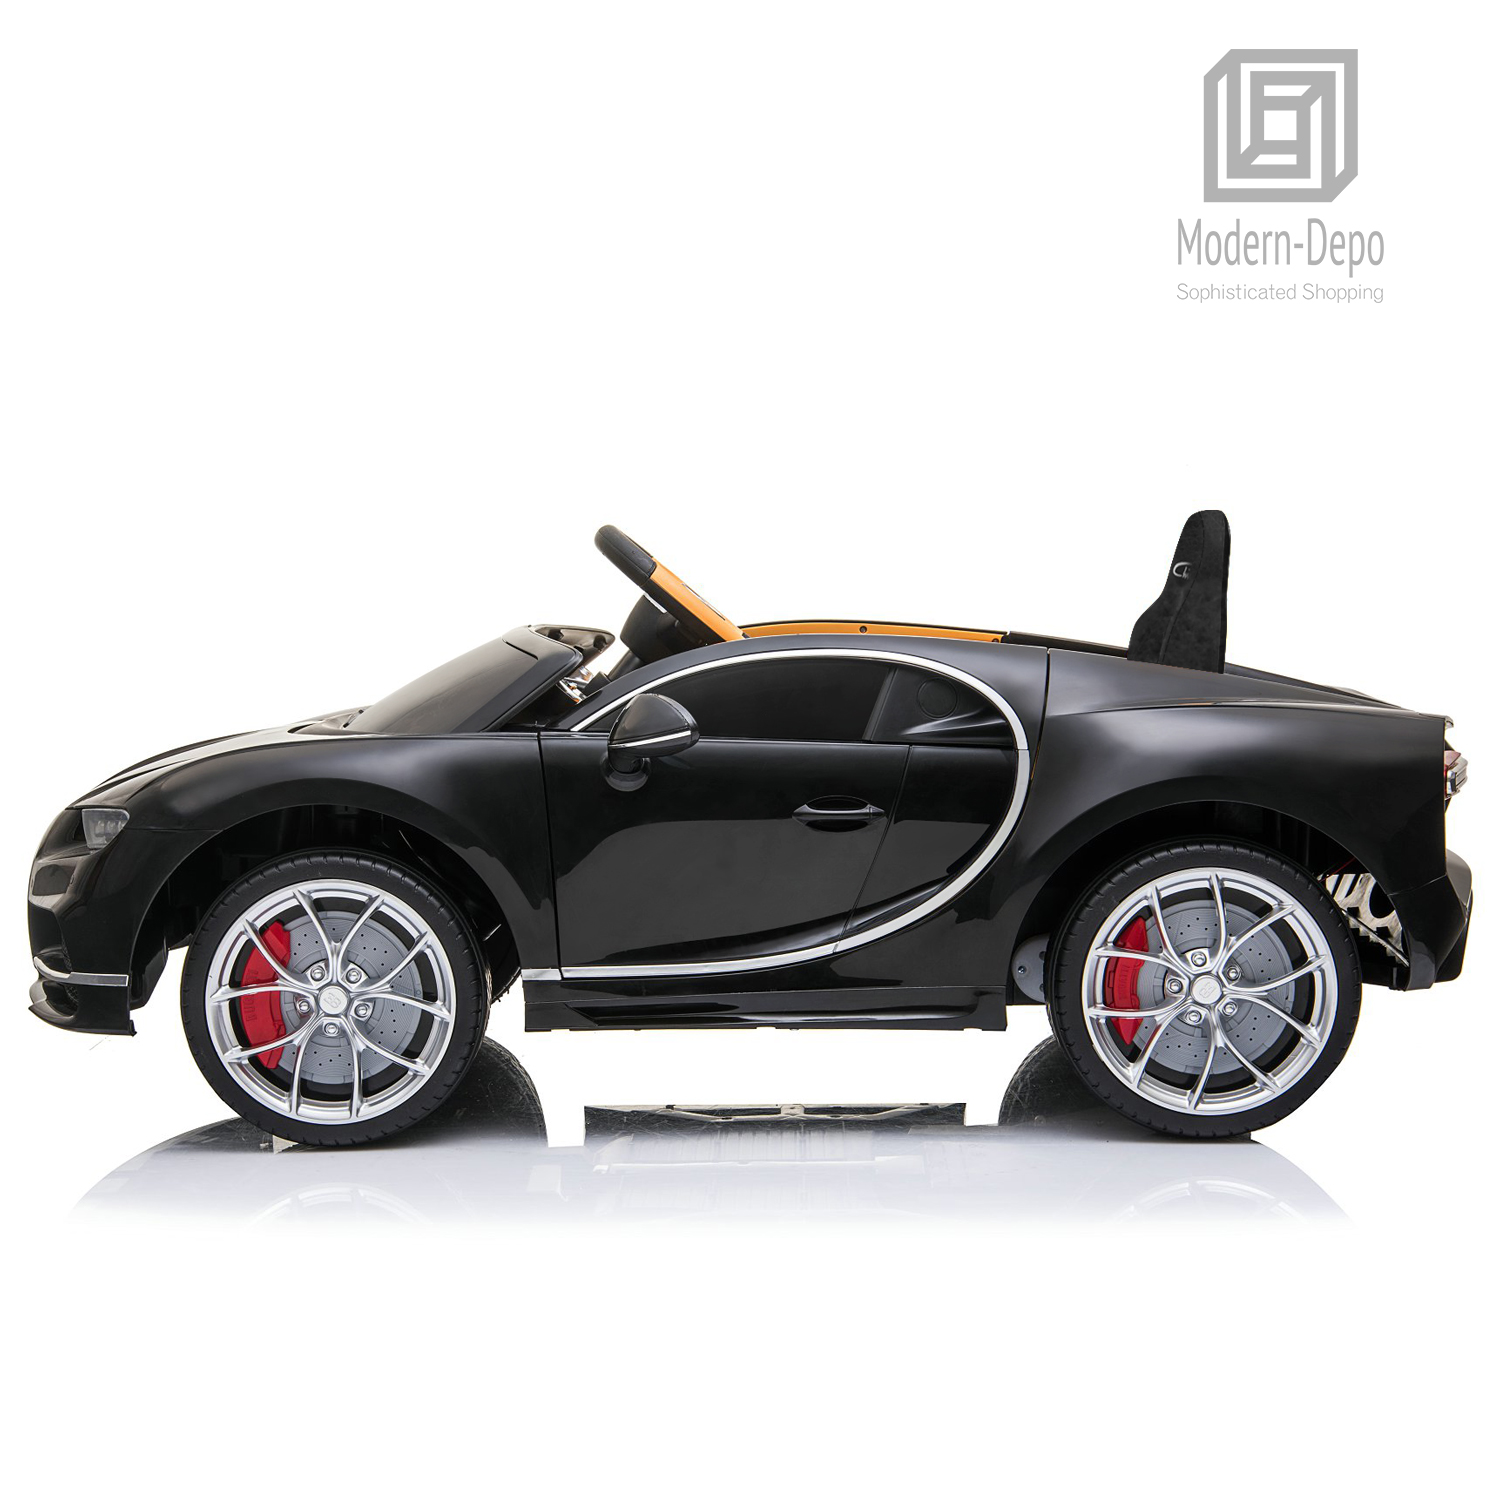 Bugatti-Chiron-12V-Kids-Ride-On-Car-with-Remote-Control-High-Speed-Motor miniature 10